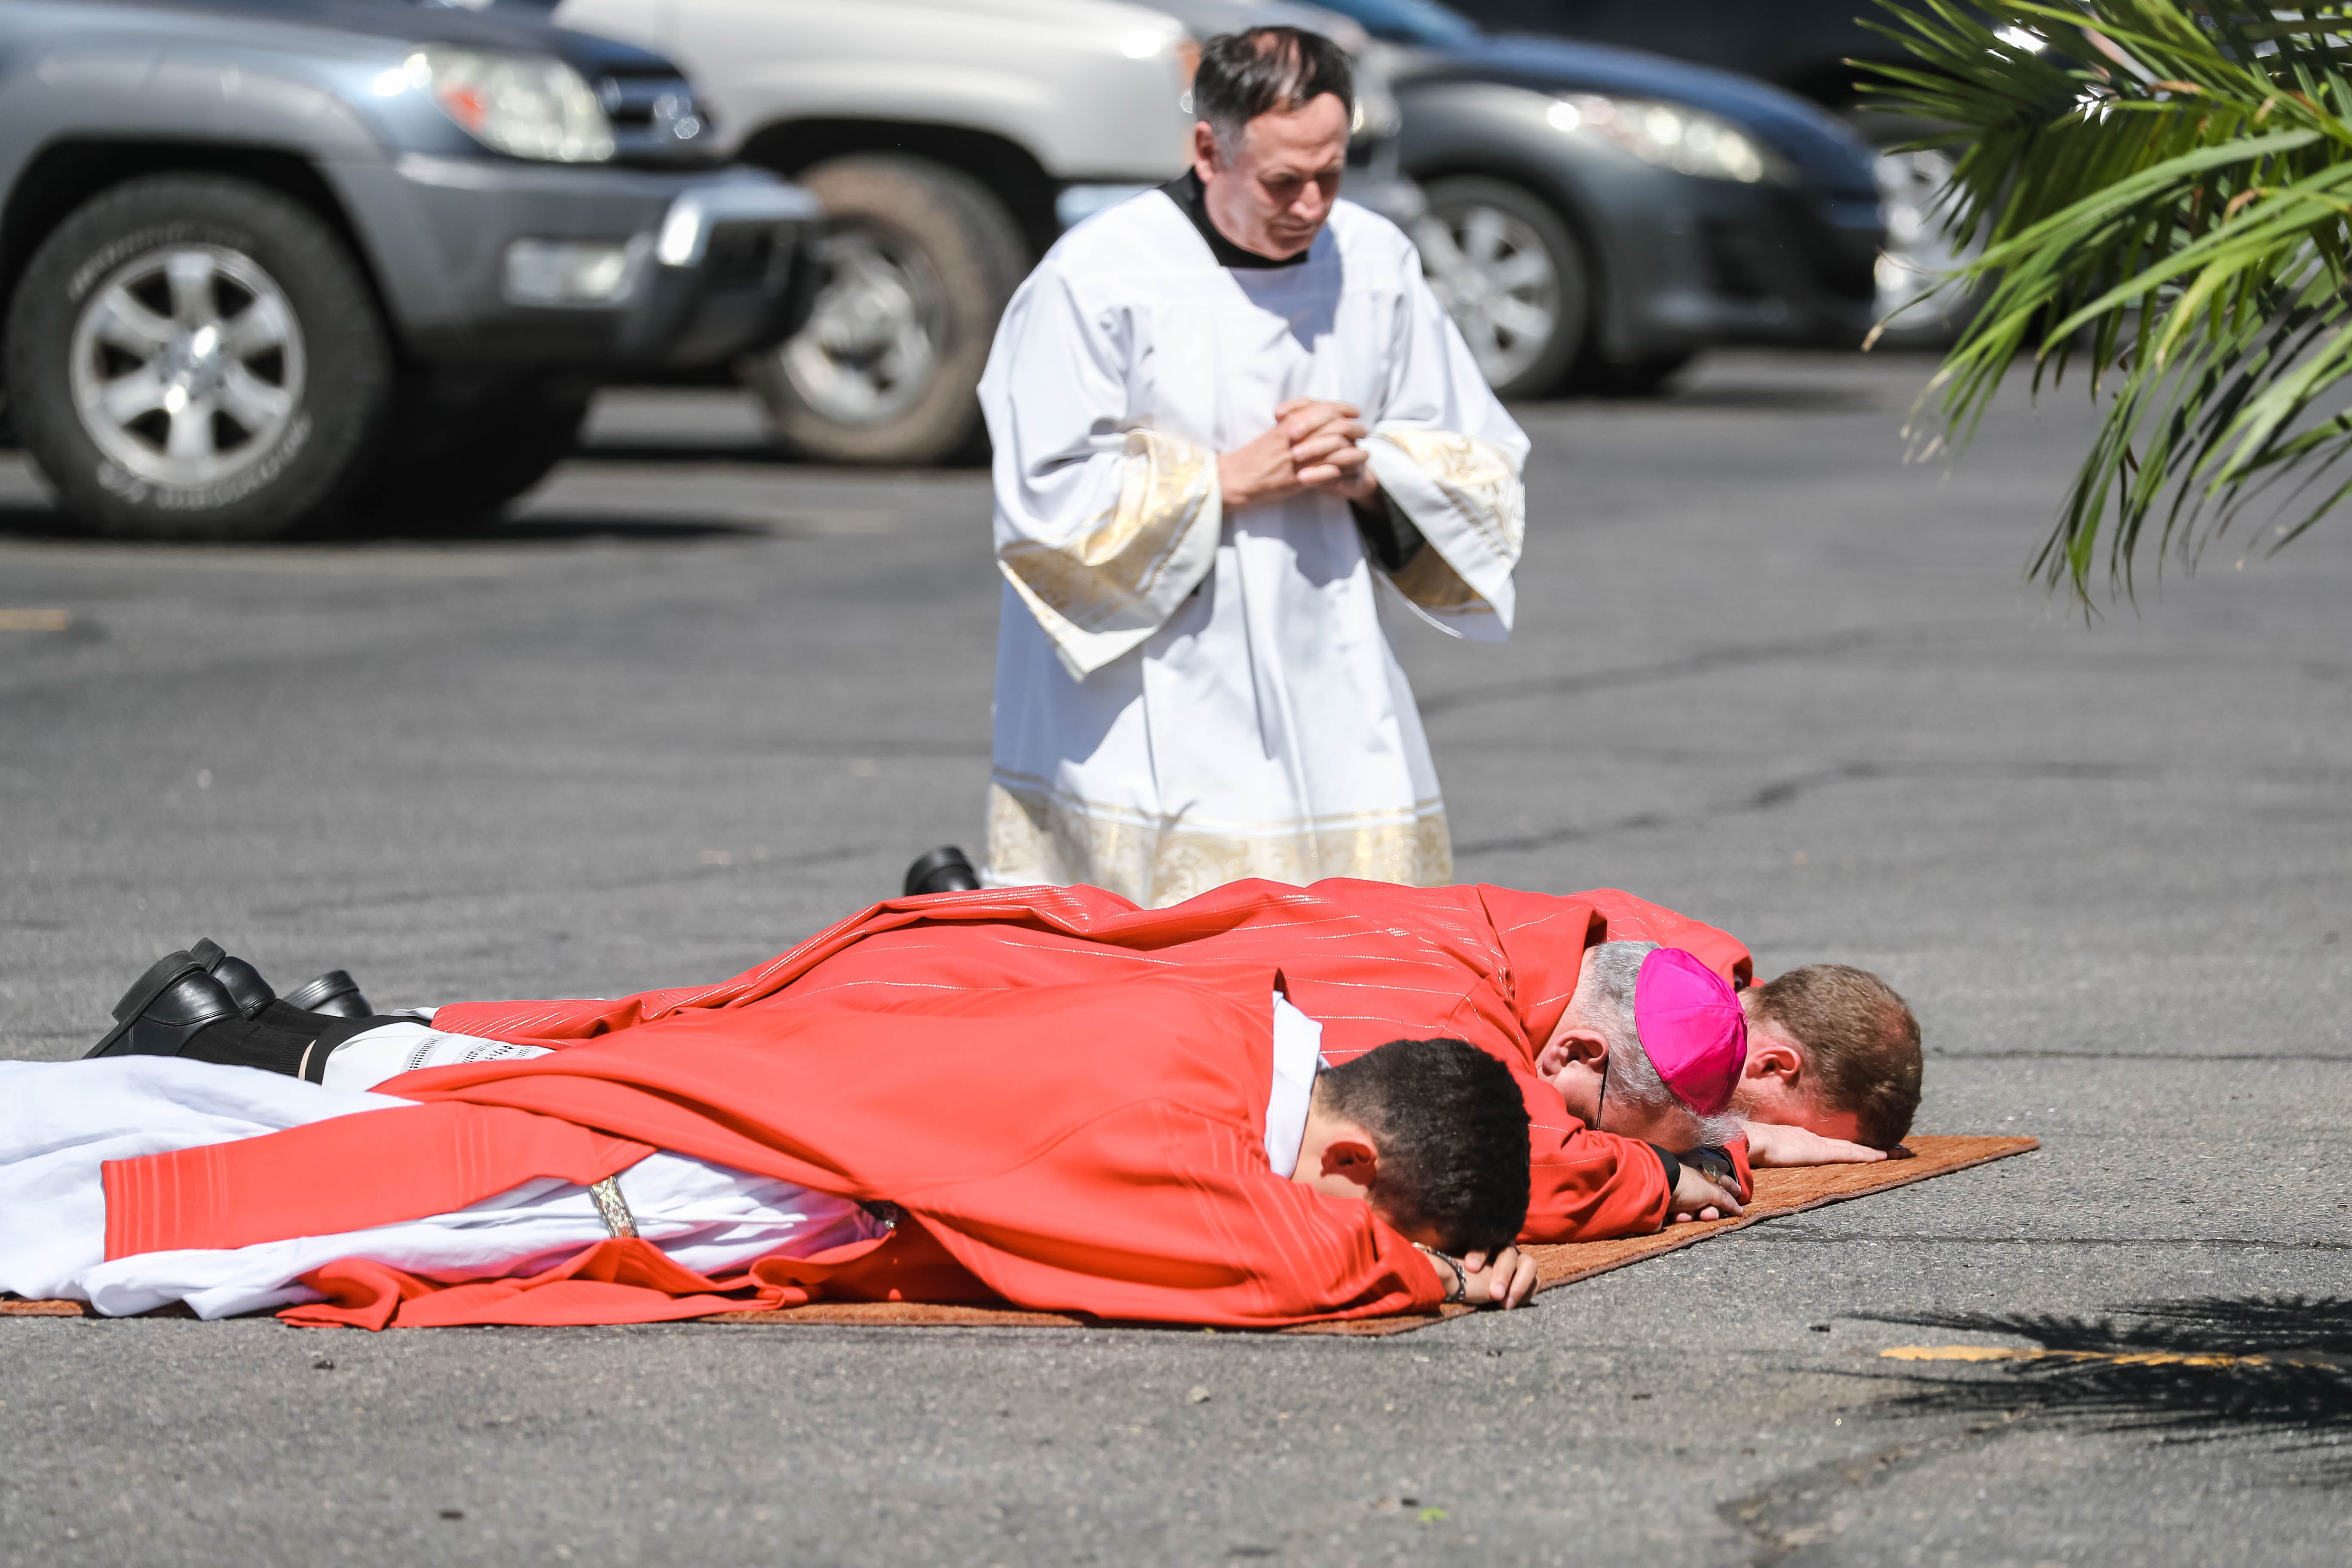 Good Friday services are held in the parking lot of Immaculate Heart of Mary in Las Cruces on Friday, April 10, 2020.